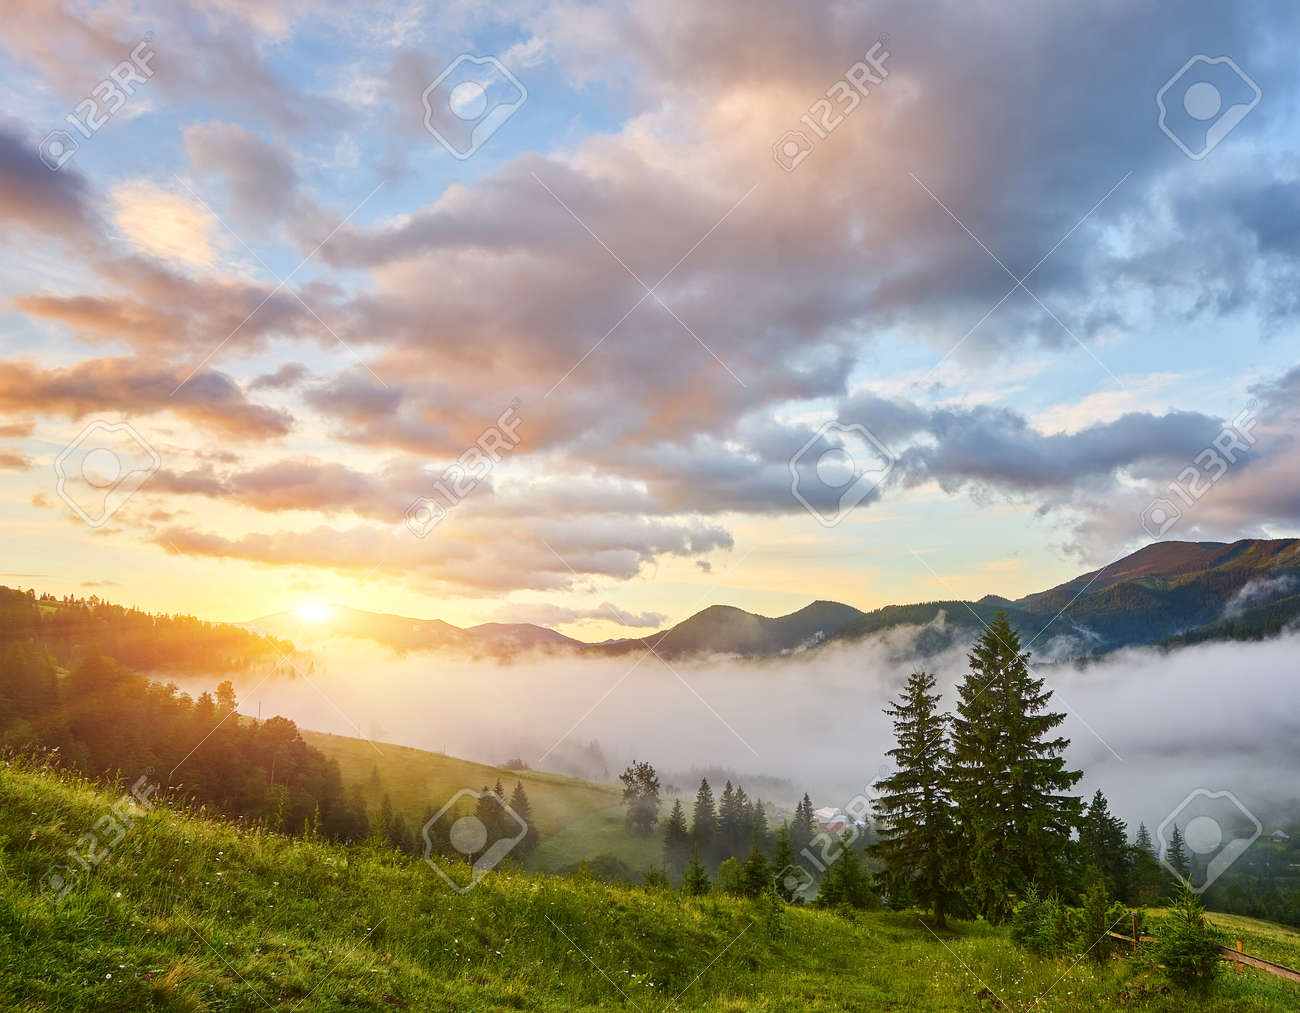 Summer landscape in mountains and the dark blue sky with clouds - 169020876